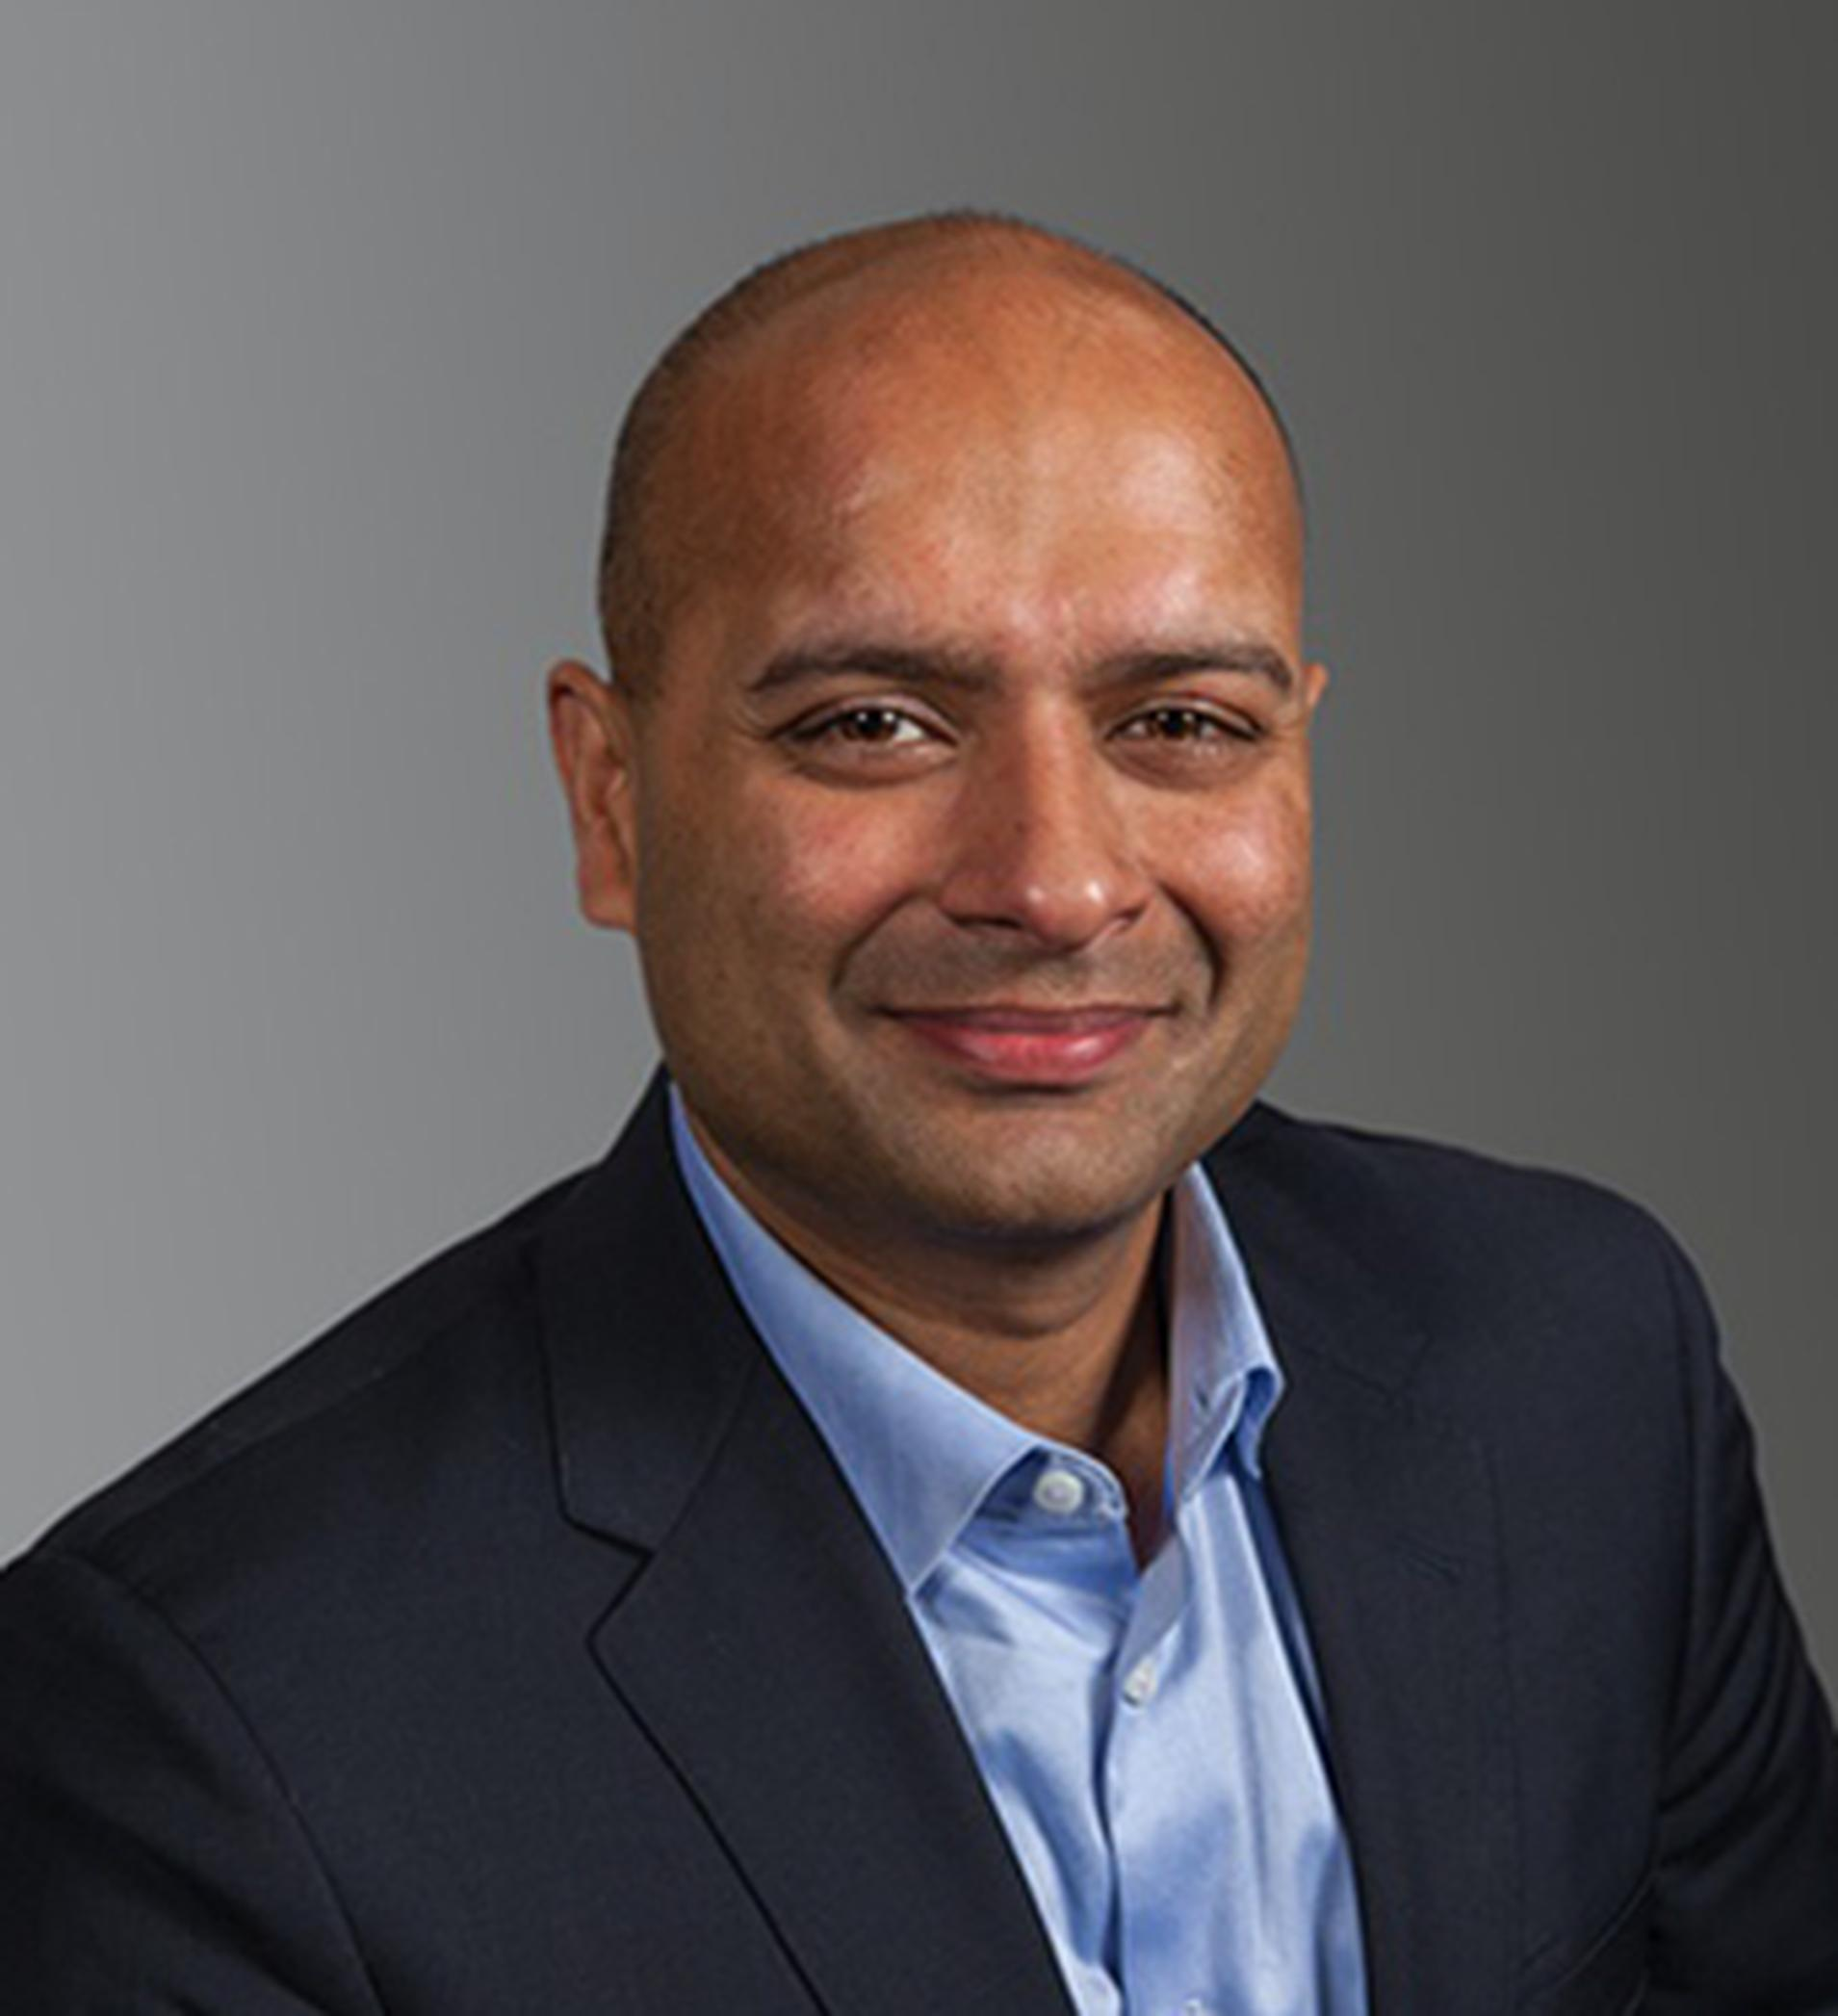 Conduent names Gupta as its new technology chief